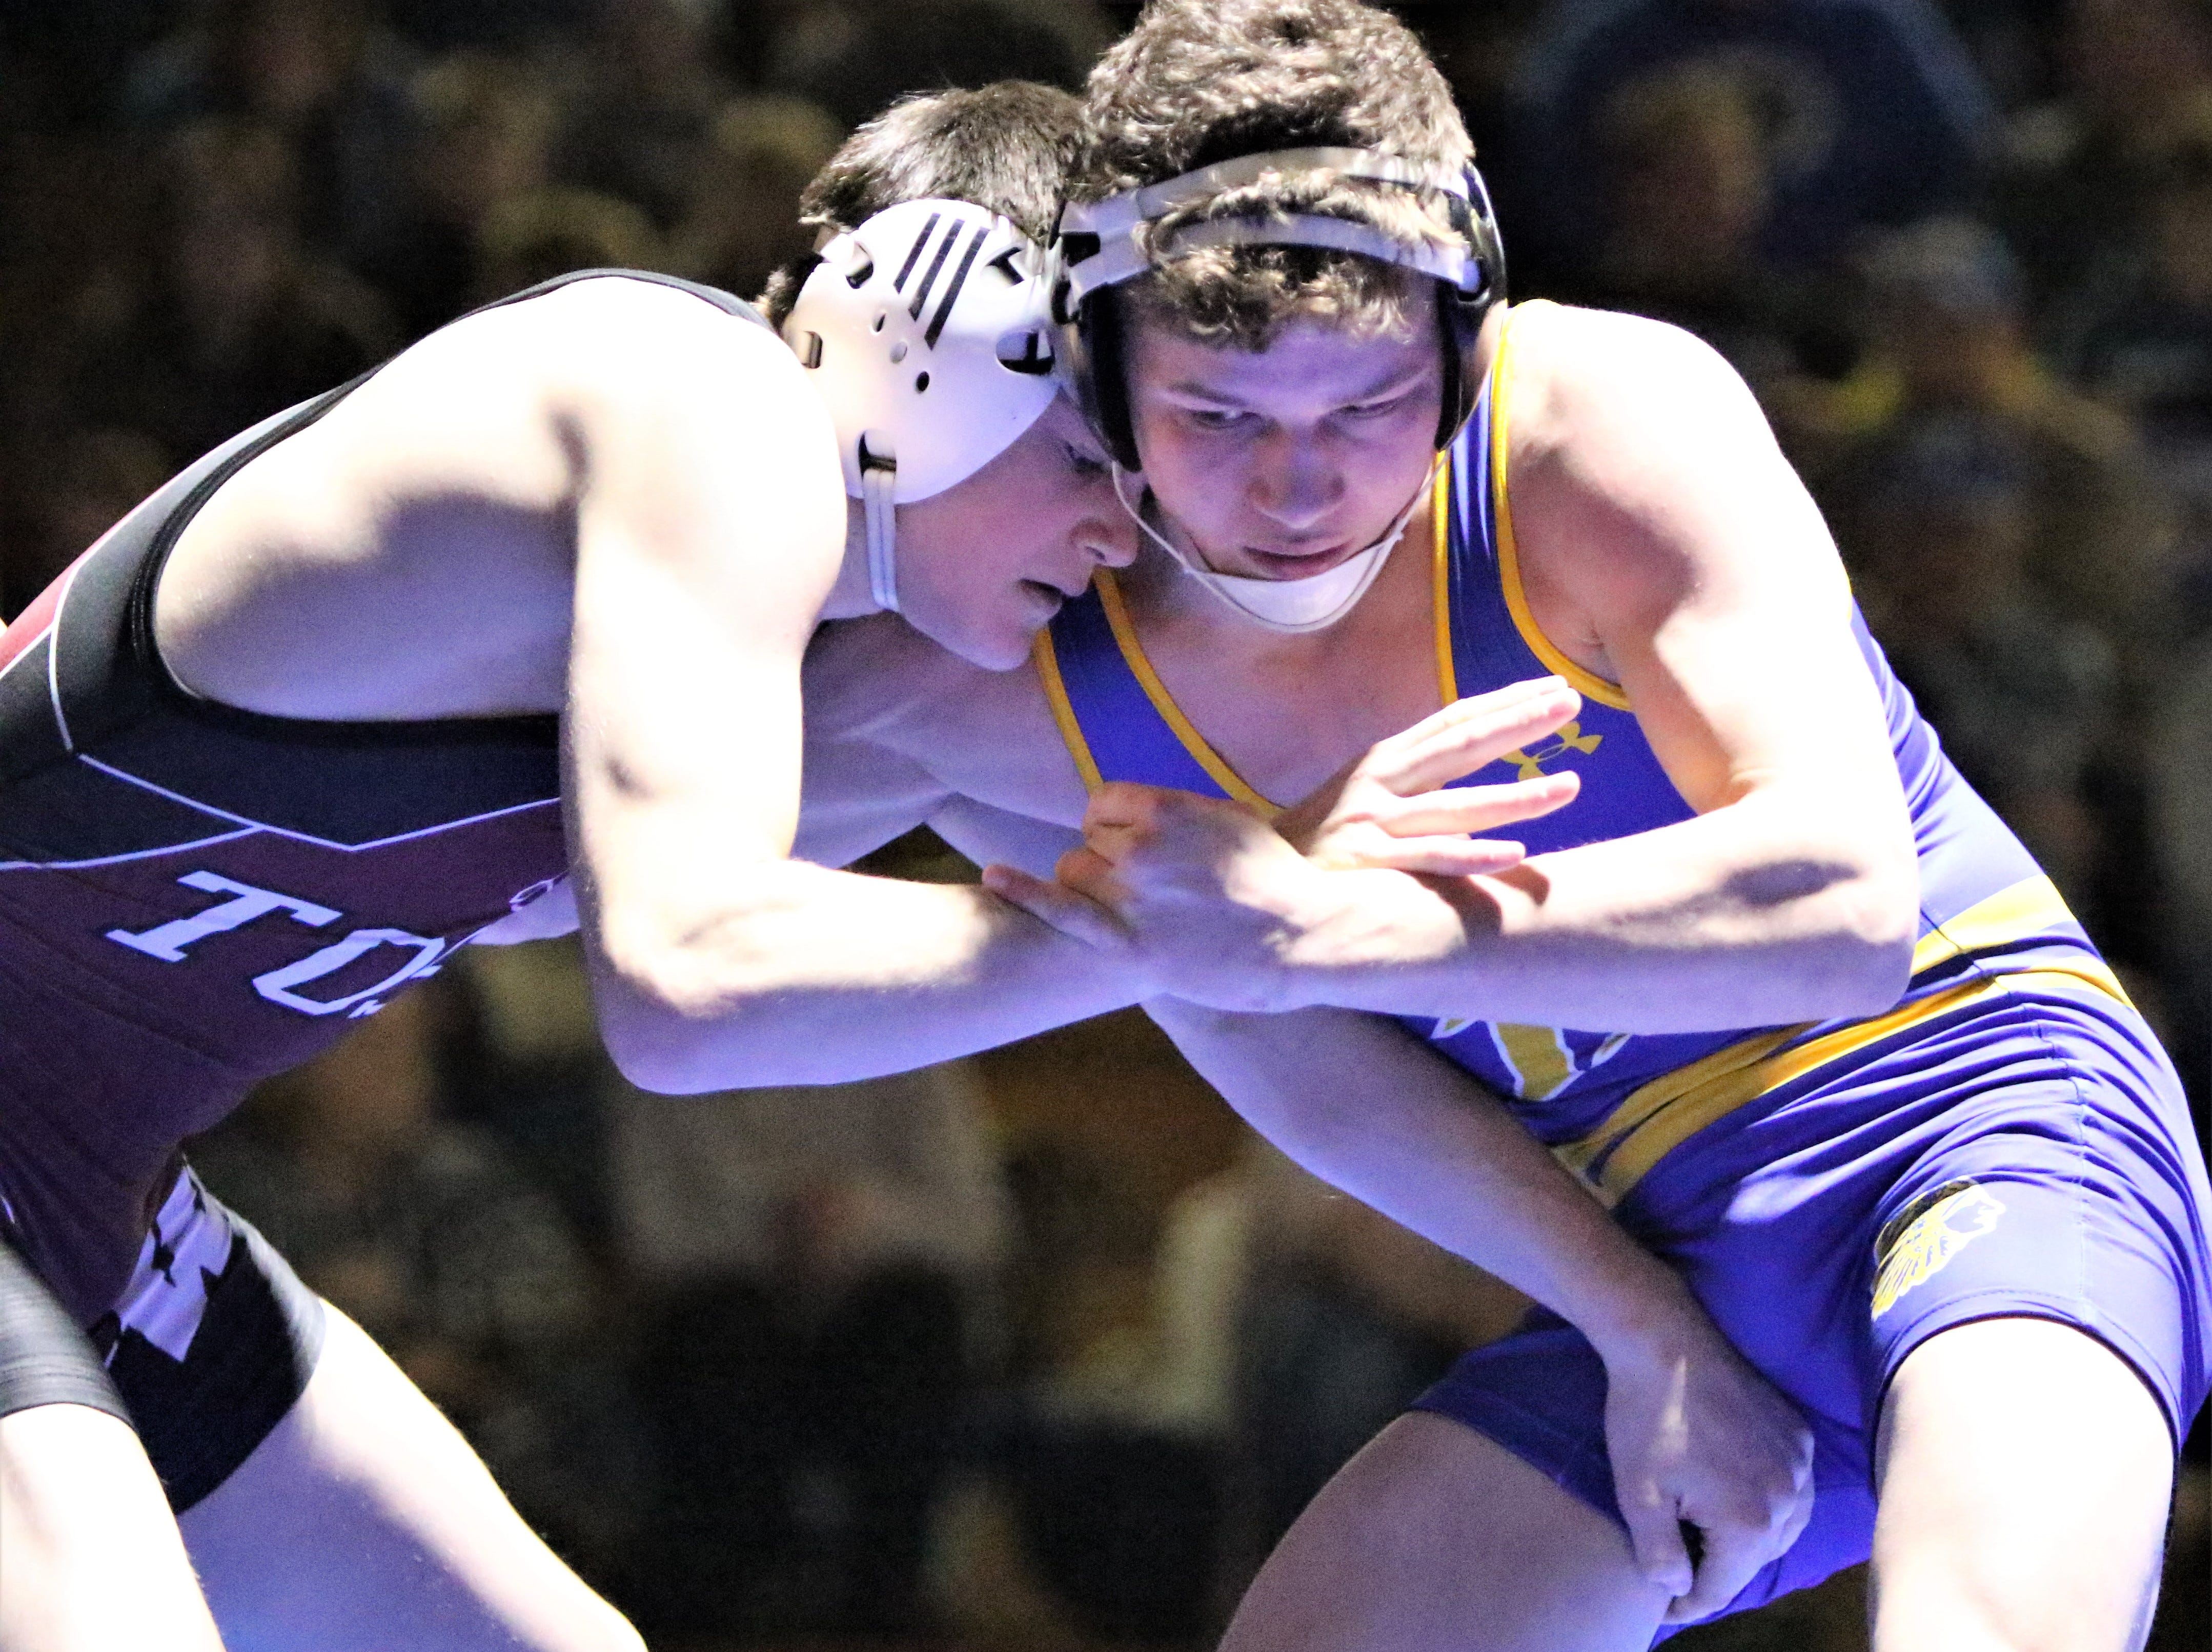 Mukwonago's Nate Stokhaug (right) wrestles against Wauwatosa's Ben Acker in a WIAA sectional final on Feb. 13, 2019.